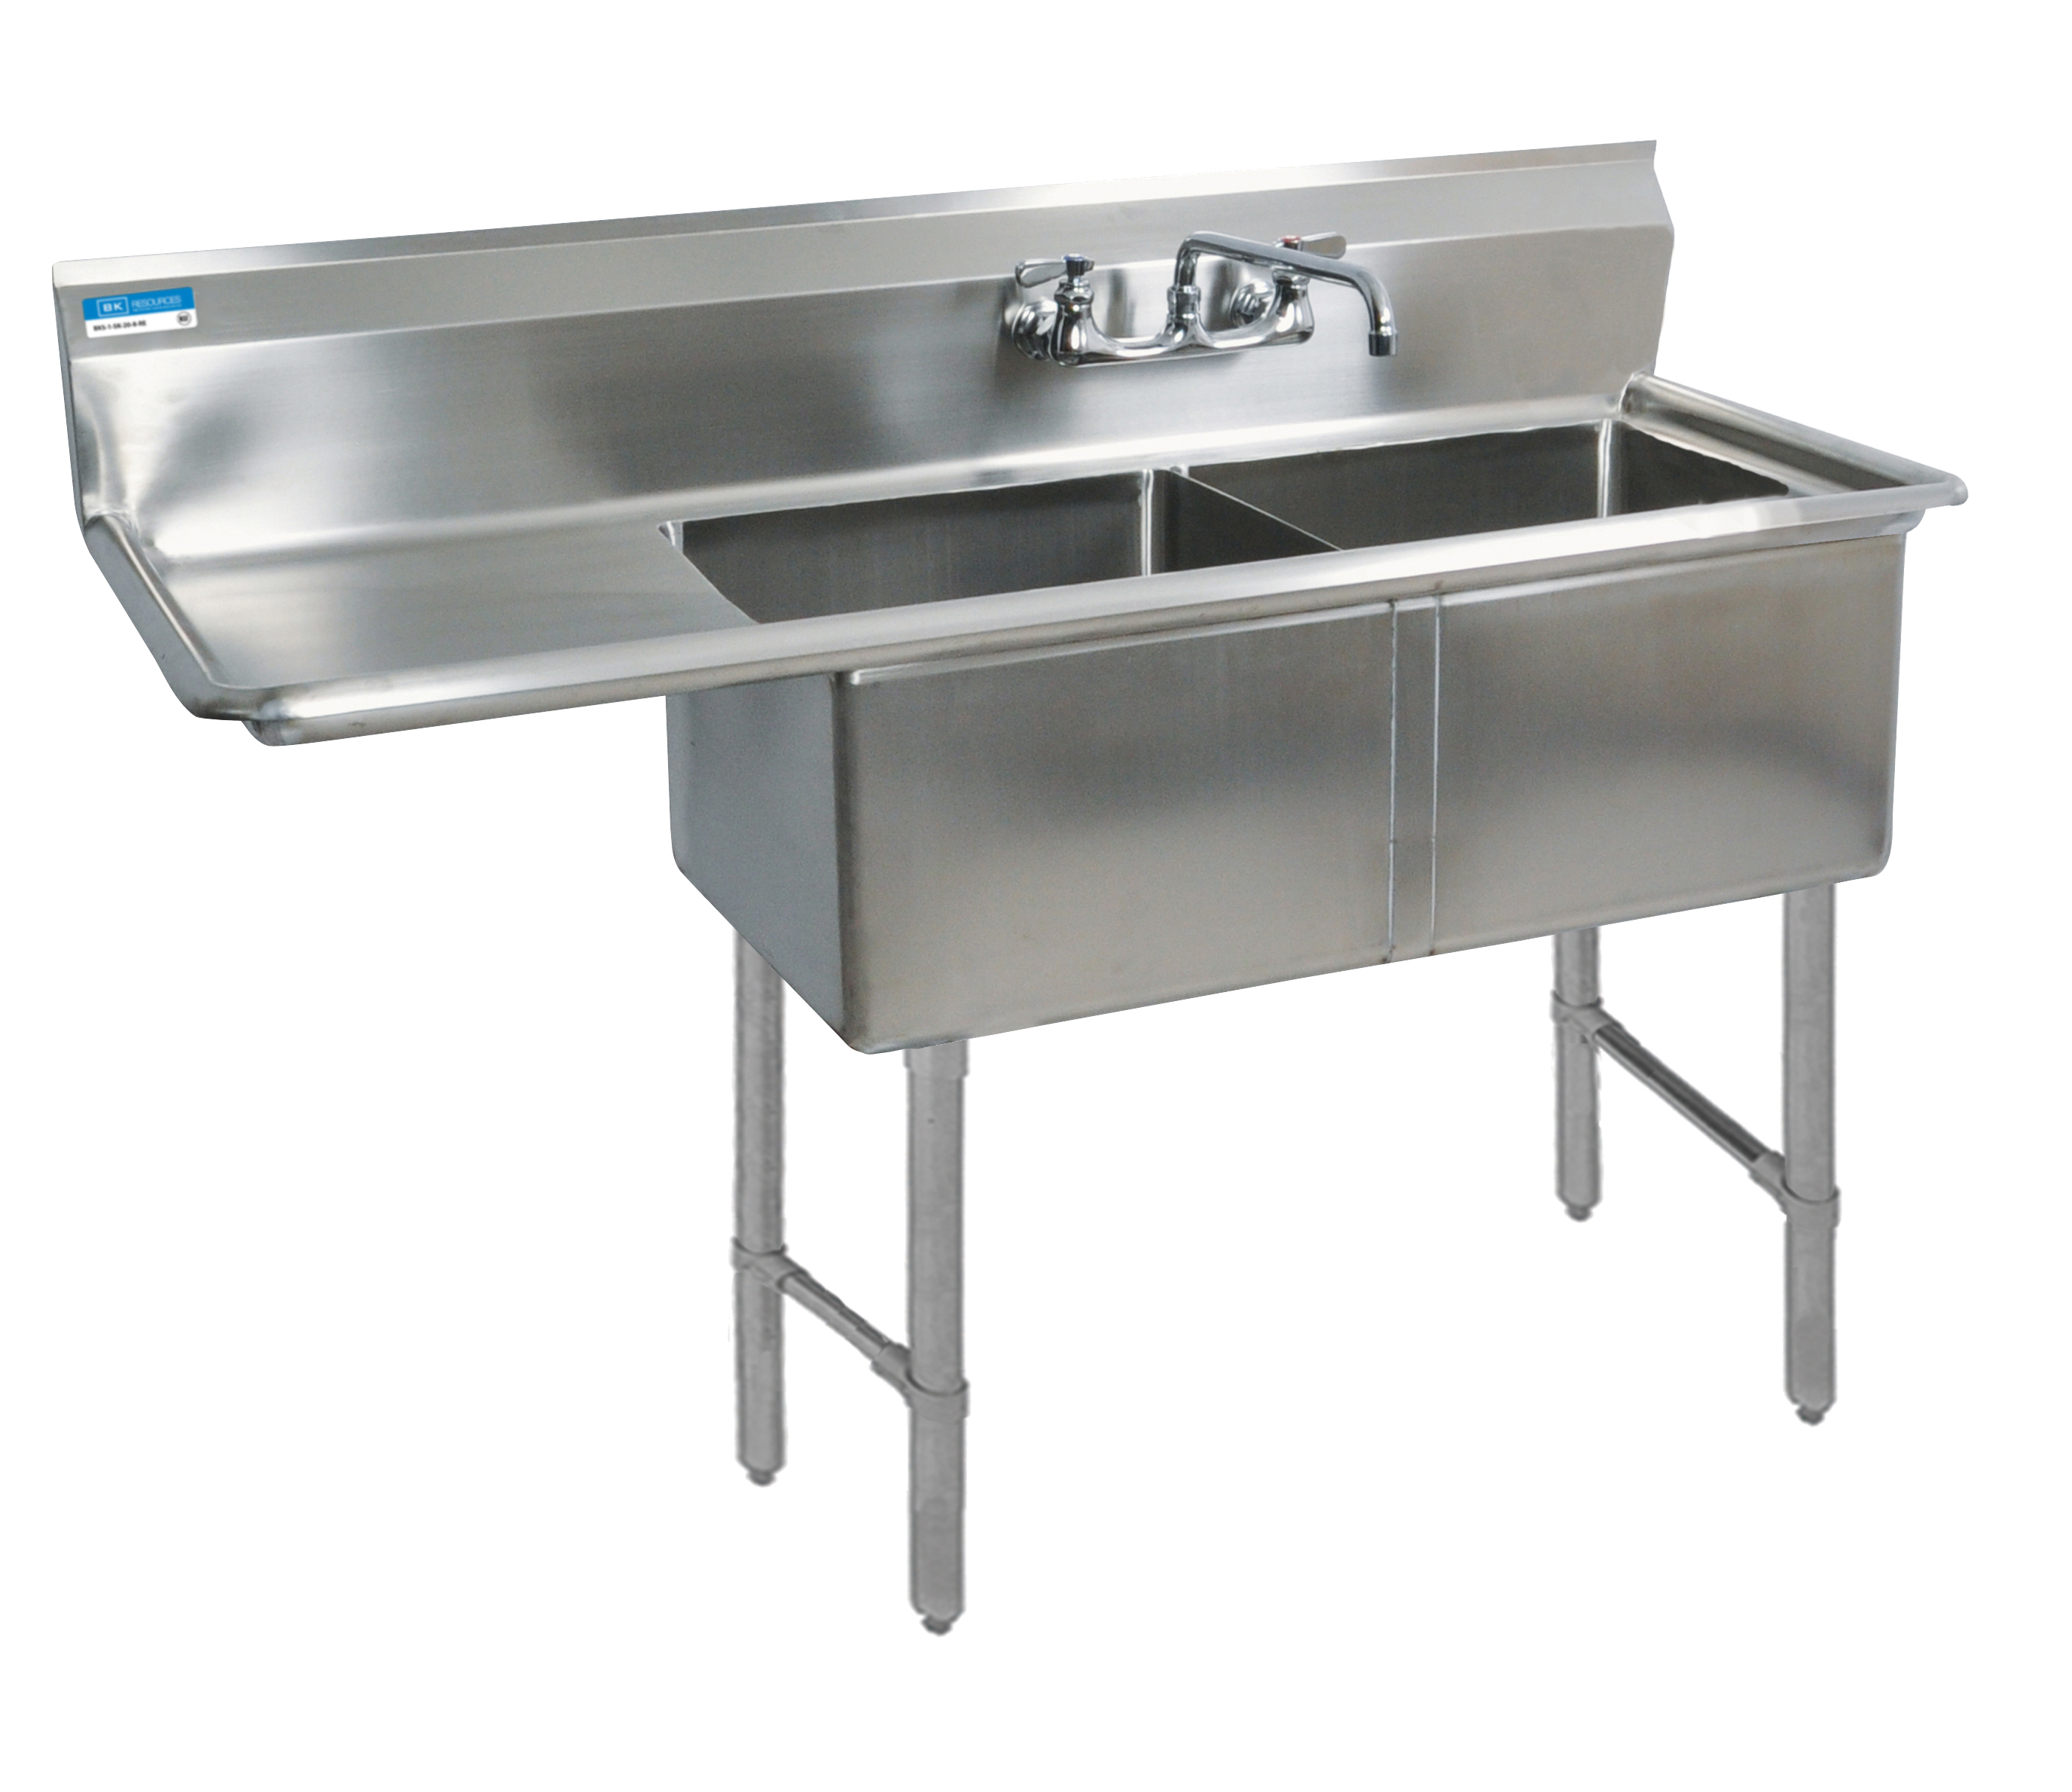 BK Resources BKS6-2-1620-14-18LS sink, (2) two compartment